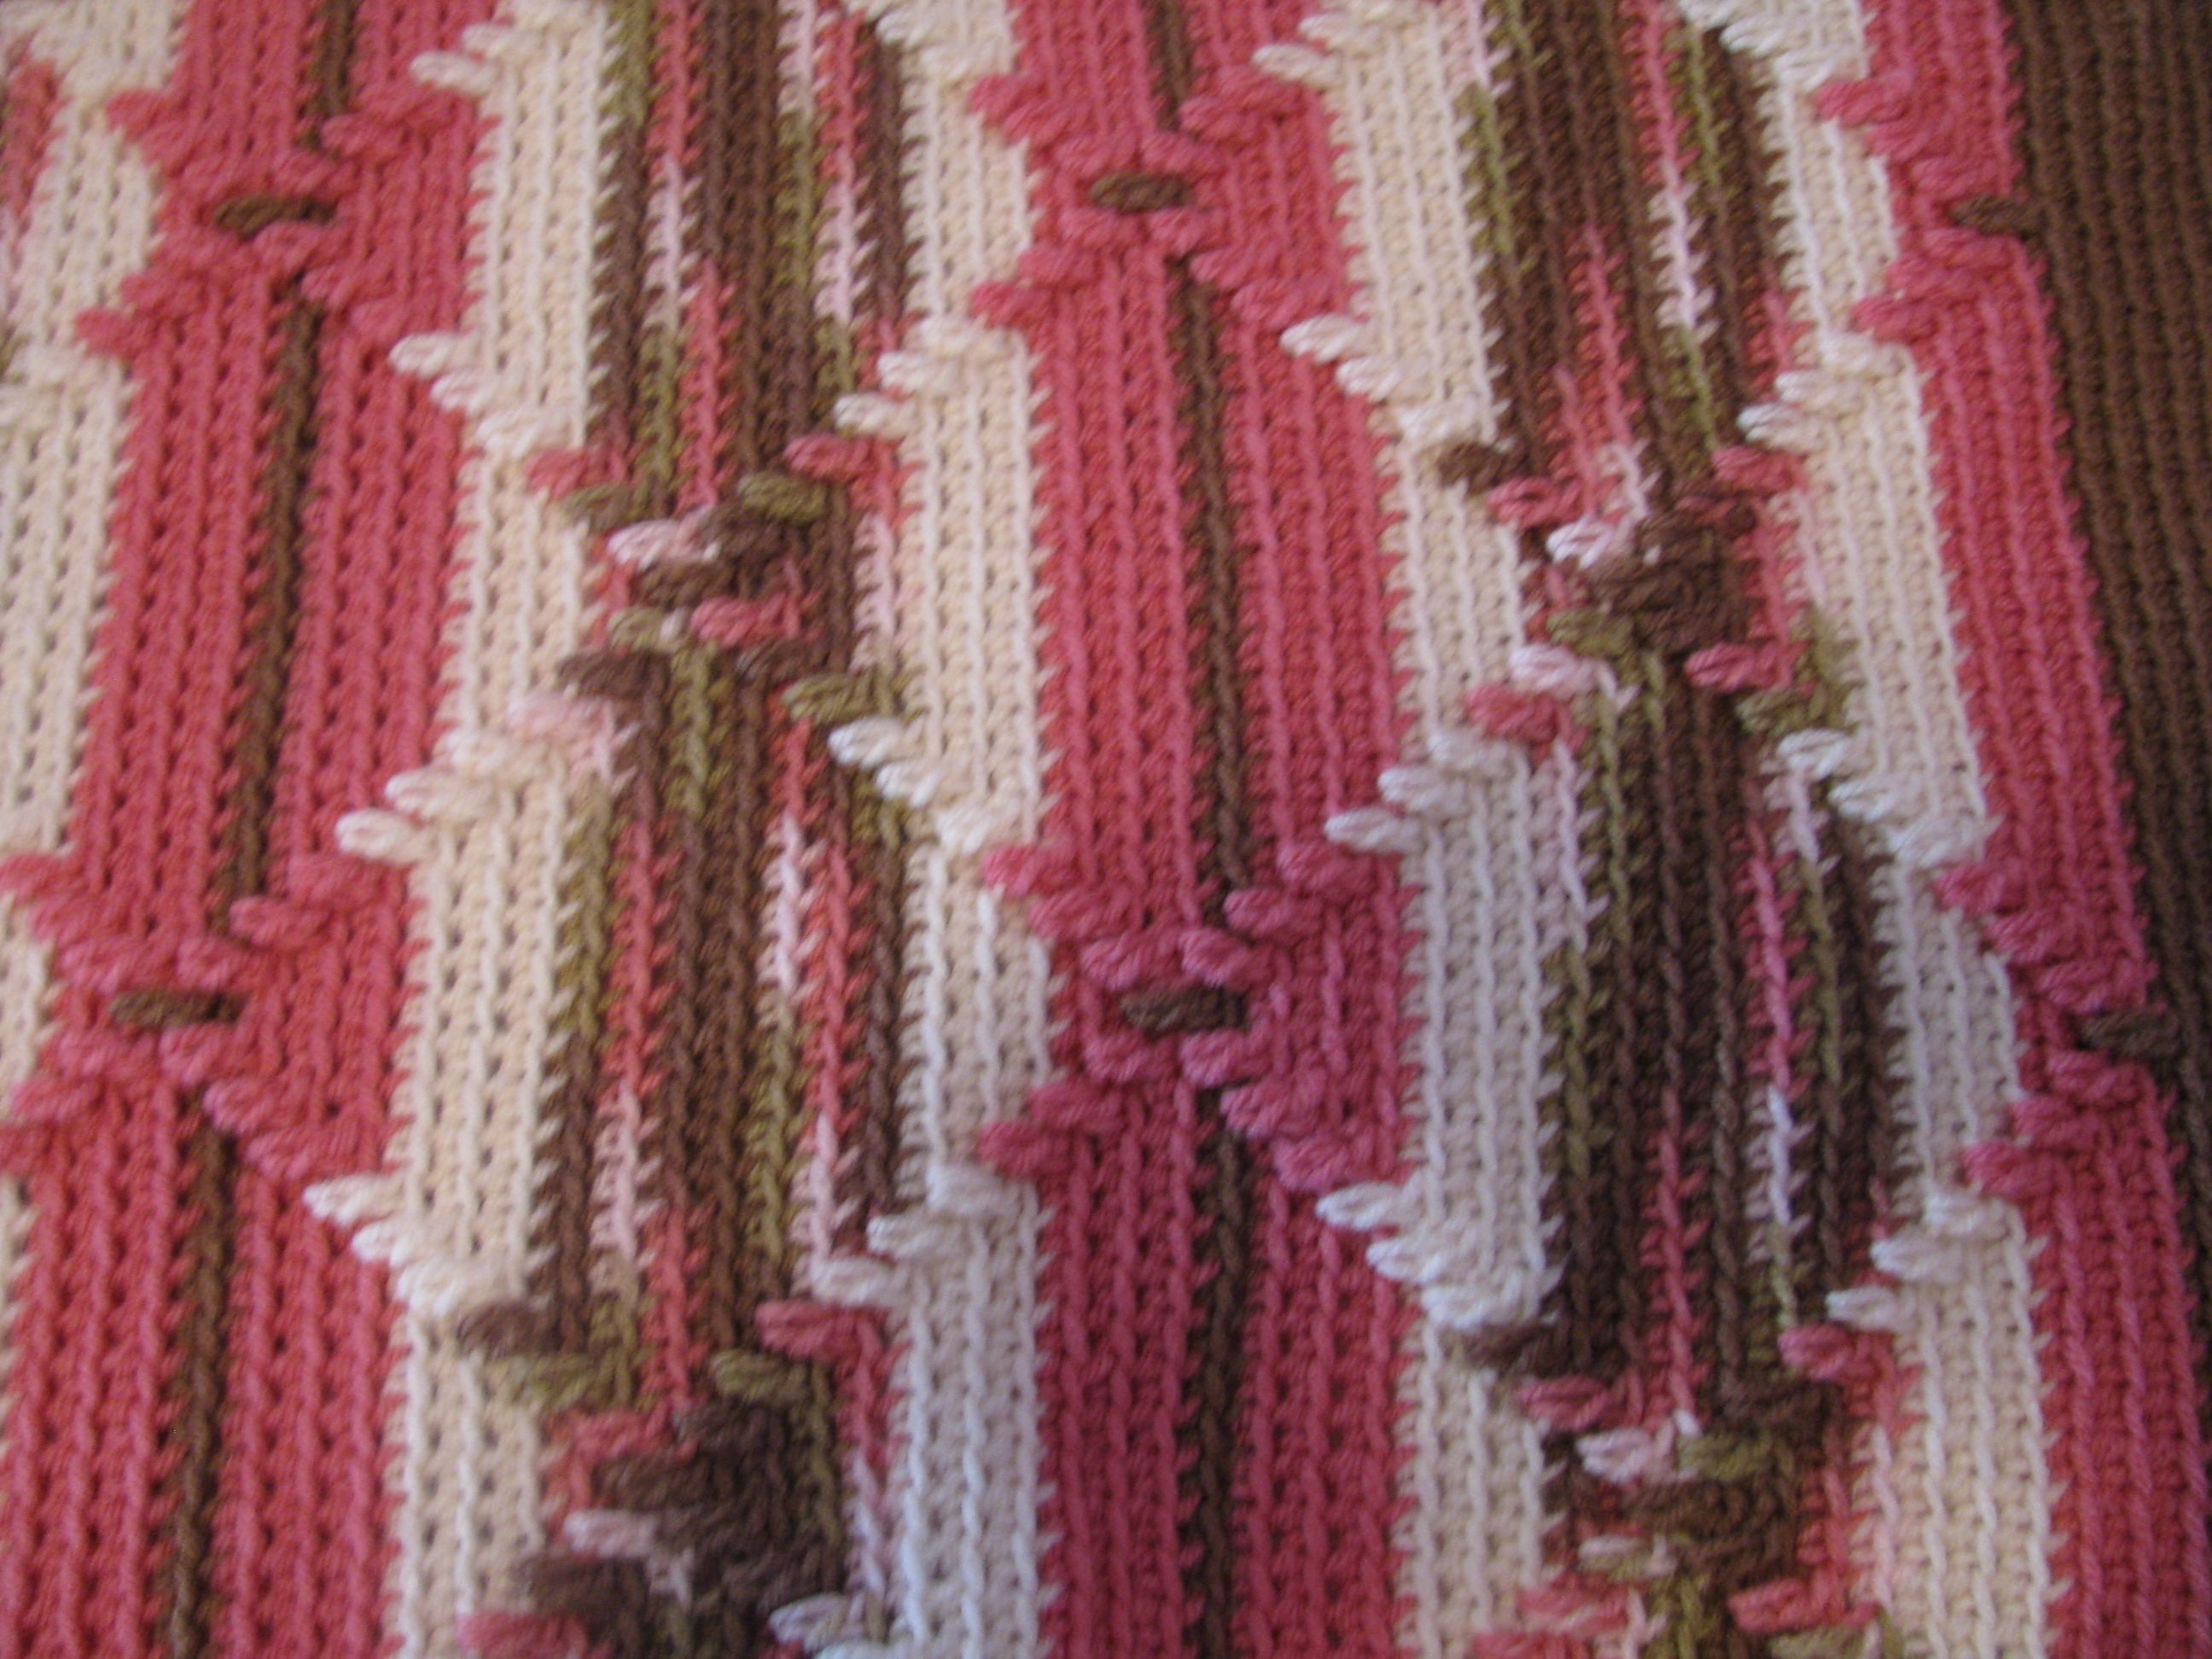 Crocheted Afghan - Navajo Pattern Pink Camouflage | Pink camouflage ...